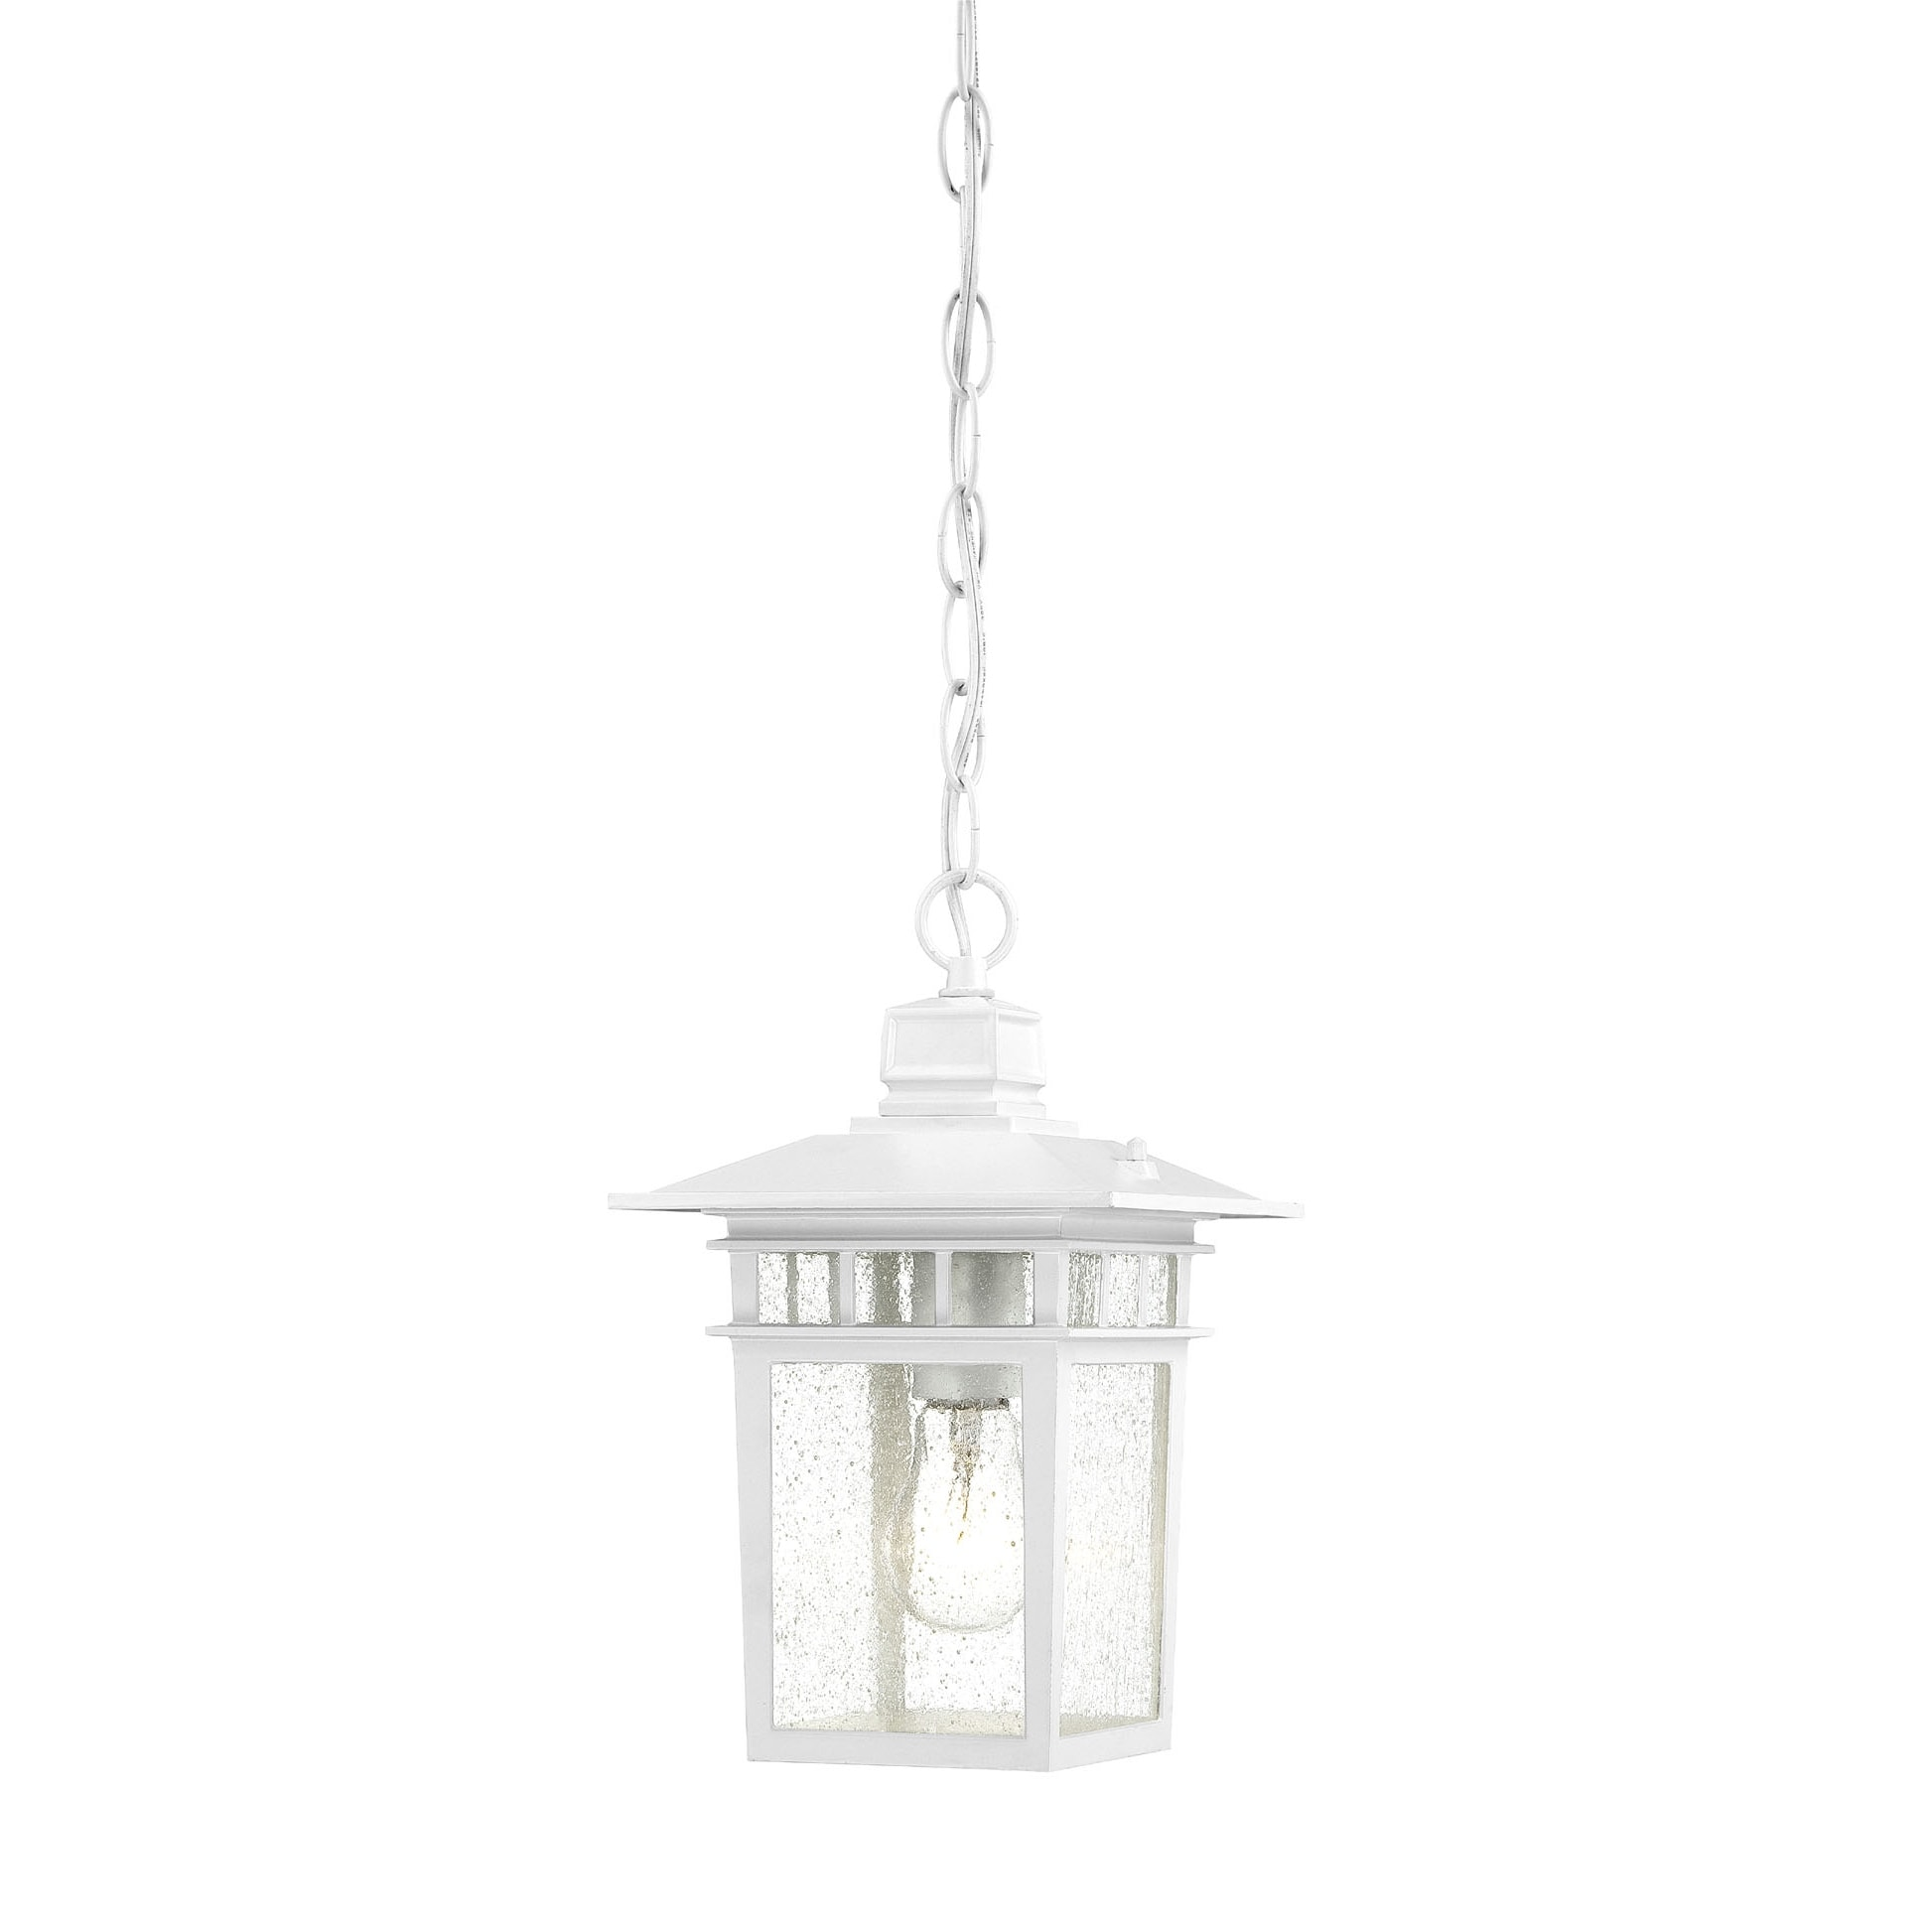 Nuvo 'Cove Neck' 1-light White 12-inch Hanging Fixture